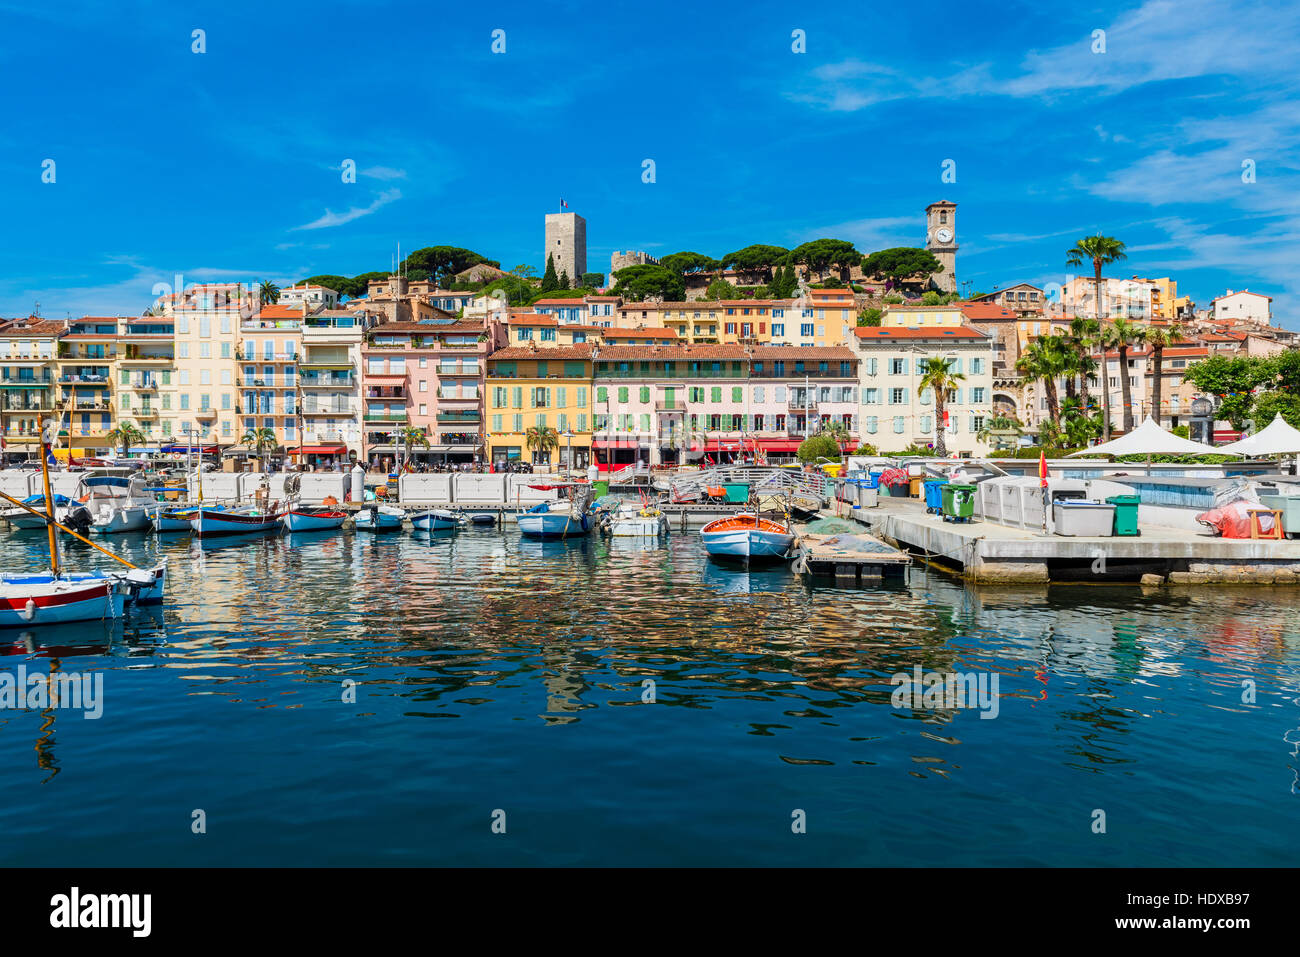 Cannes France - Stock Image